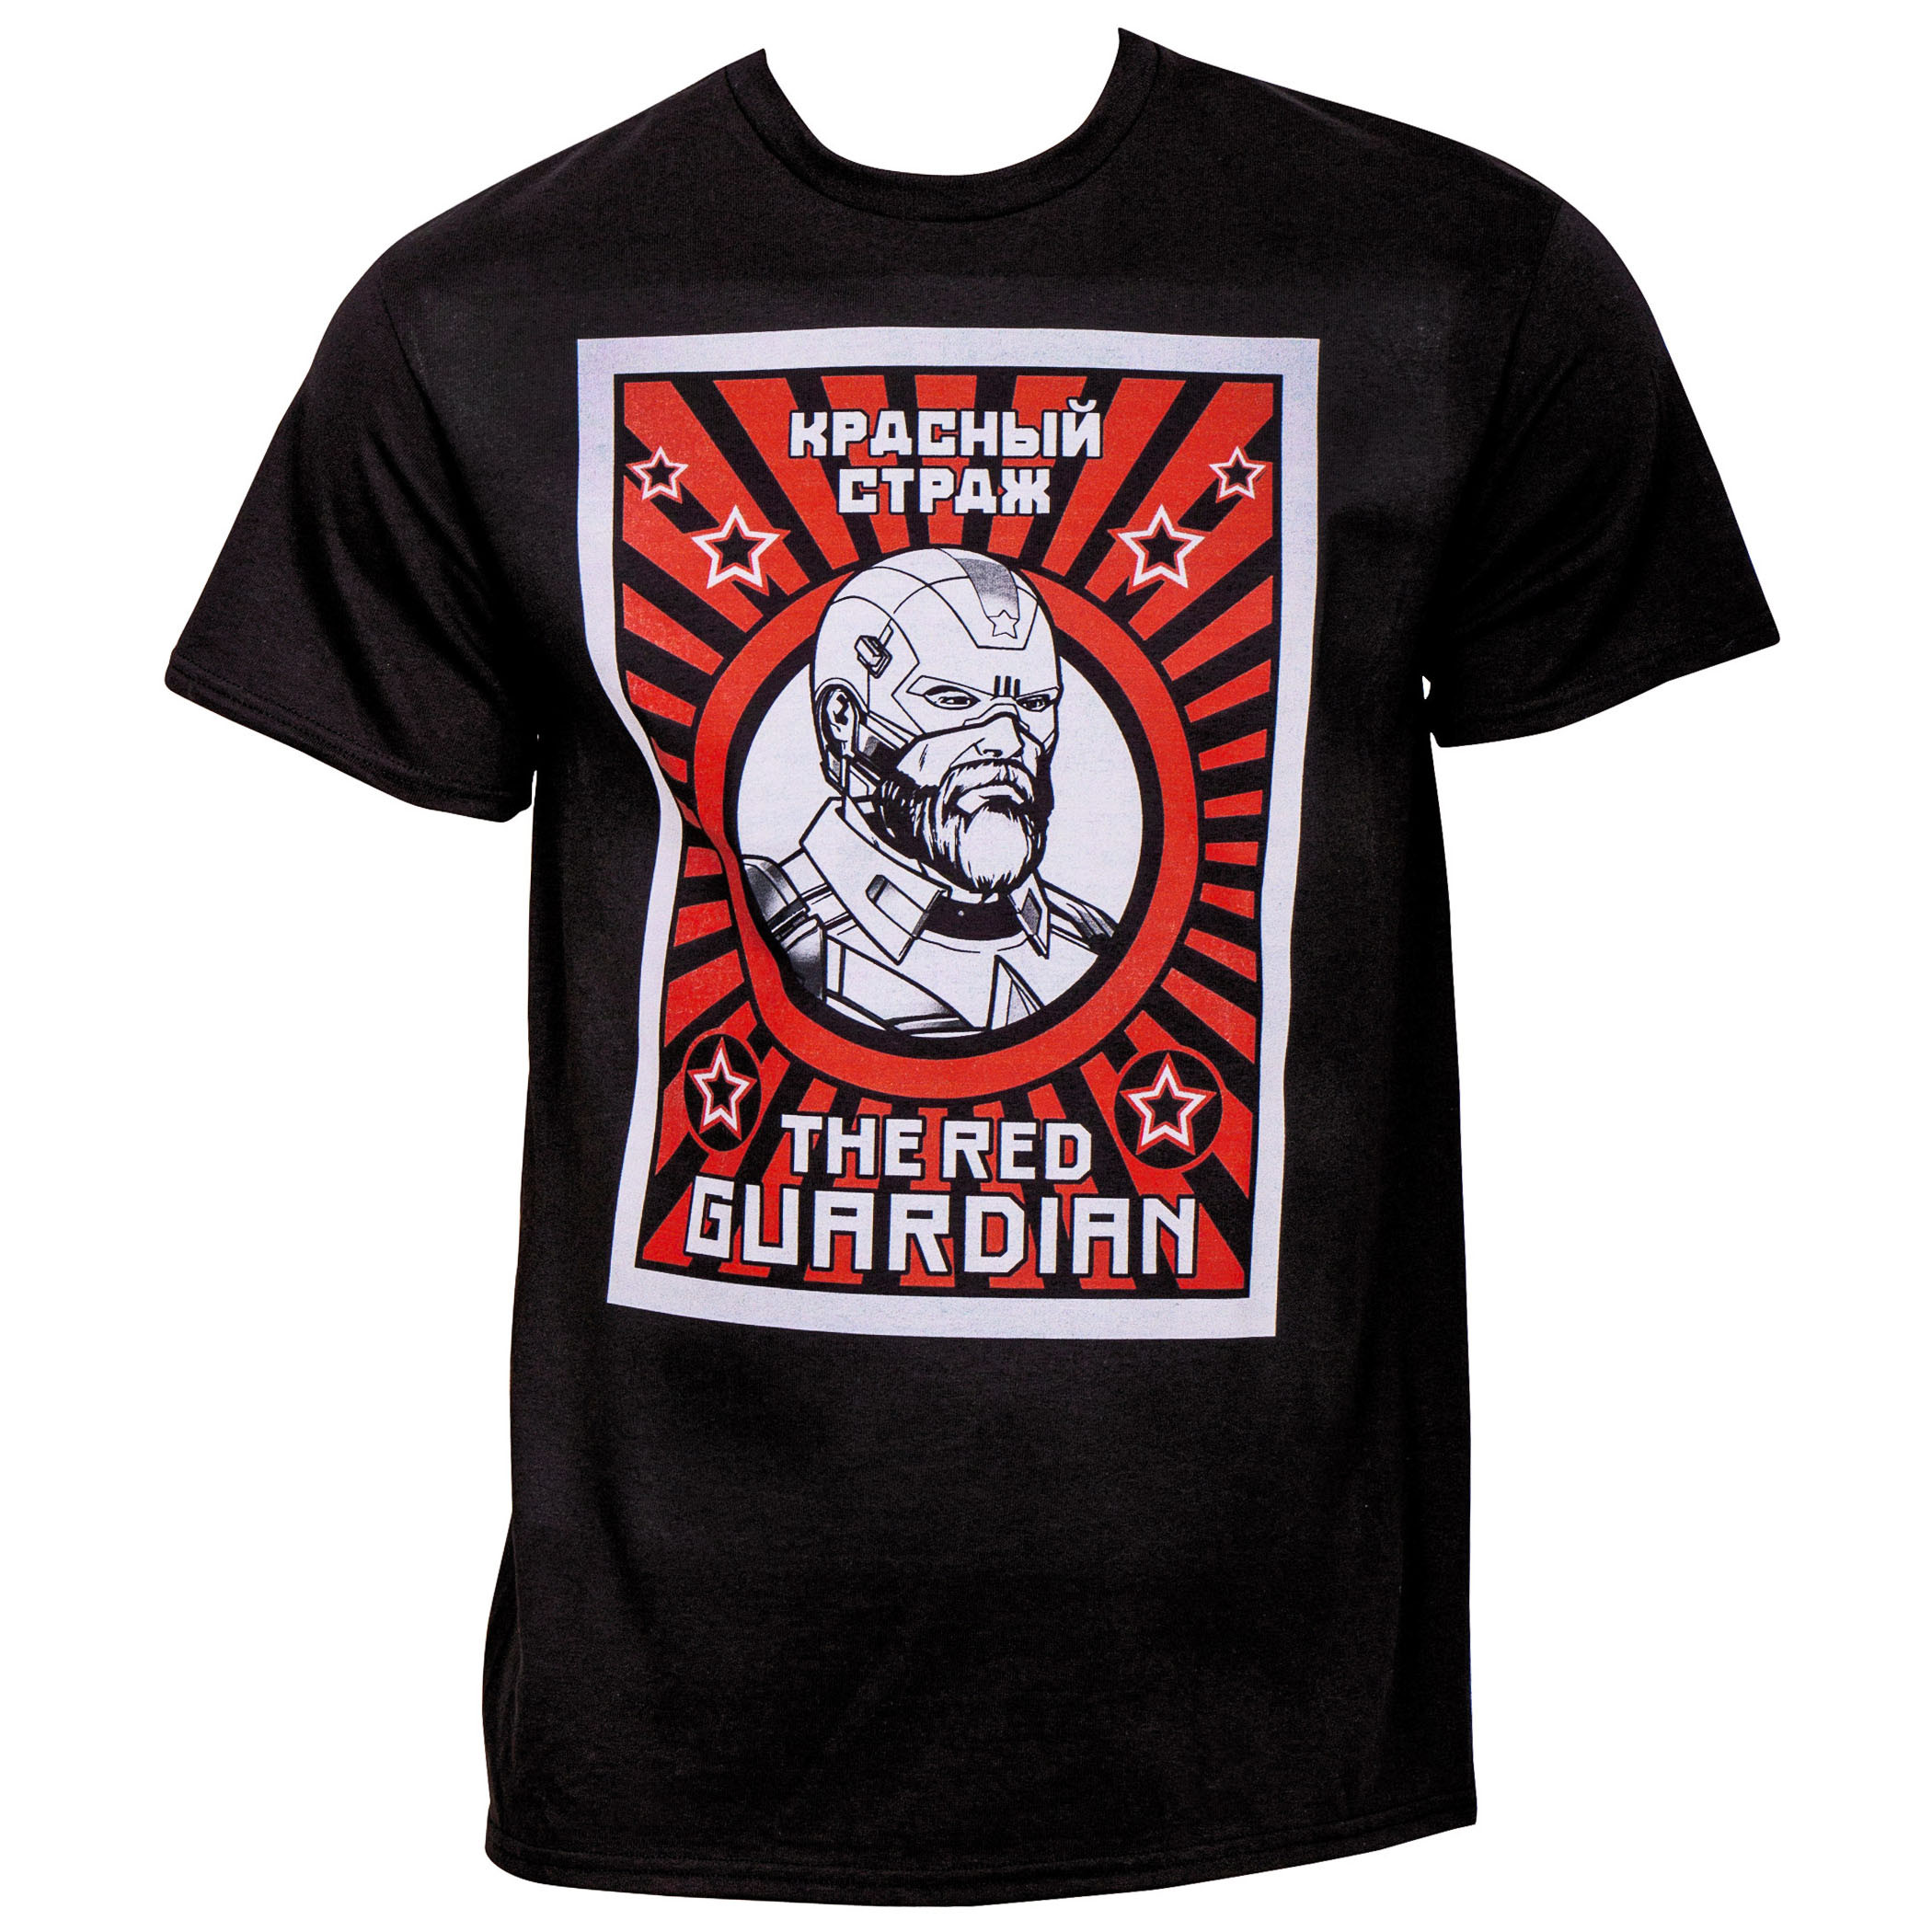 The Red Guardian Vintage Poster Black Widow Movie T-Shirt